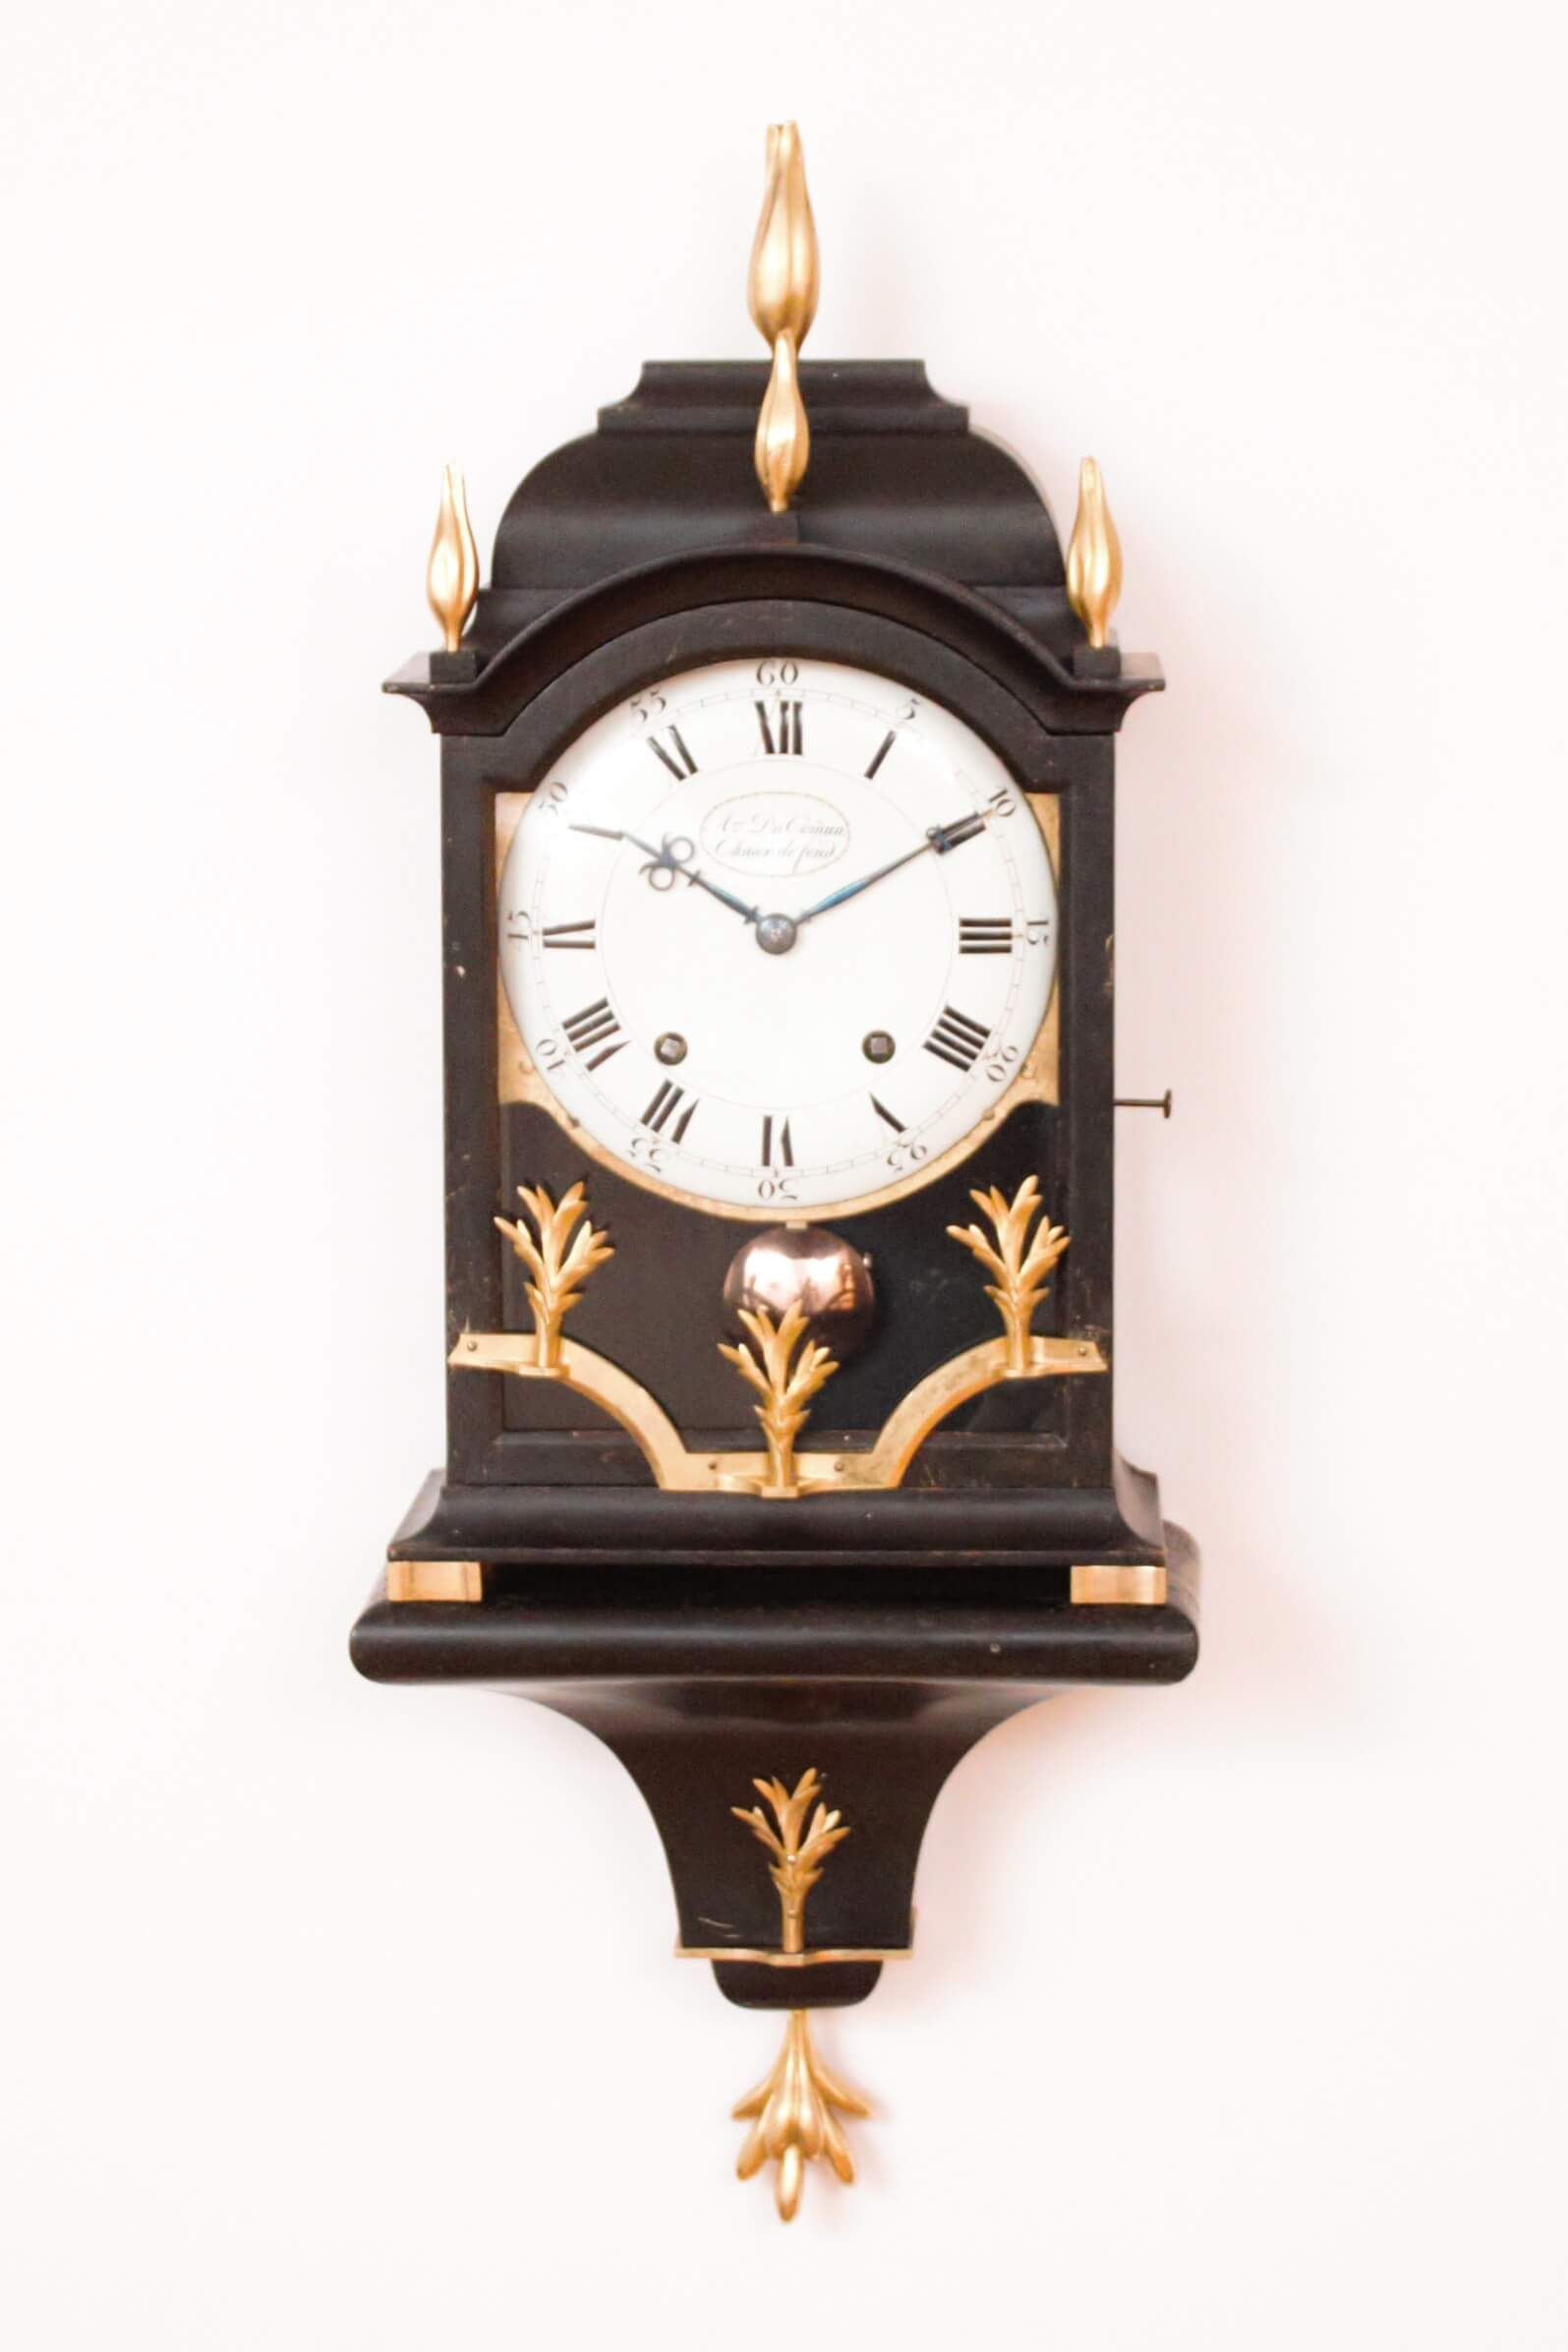 Swiss-Neuchatel-Chaux De Fond-quarter-striking-antique-bracket-clock-console-DuComun